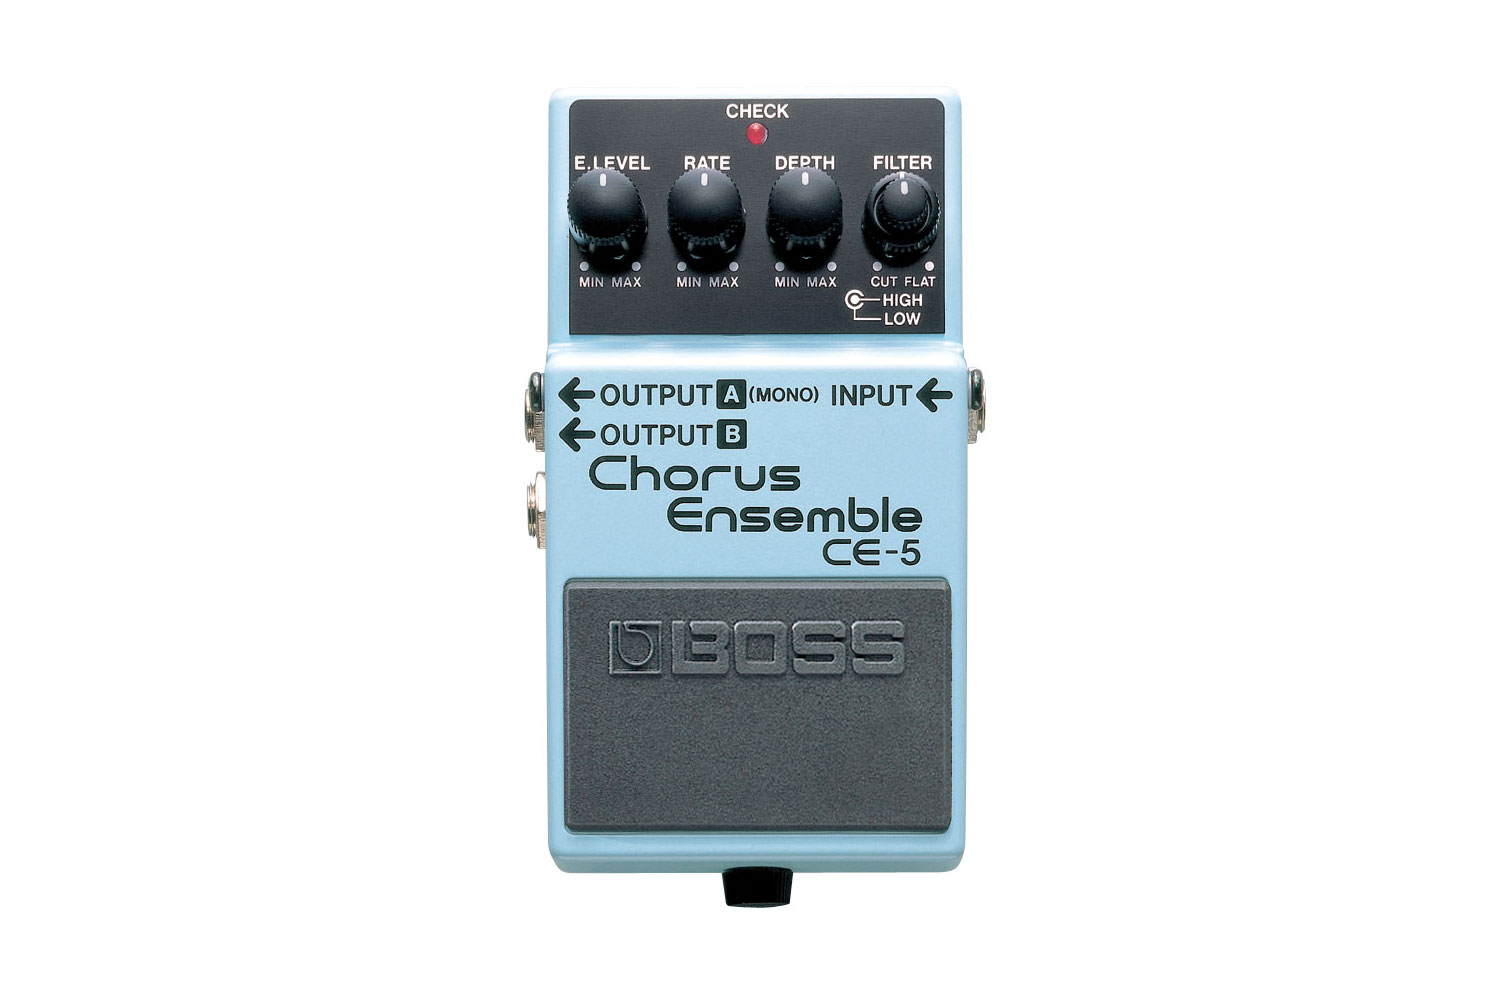 boss effect pedal dating Featured products stompboxes multi-effects guitar synthesizers digital recorders backing & rhythm loop station vocal effects acoustic tuners/.